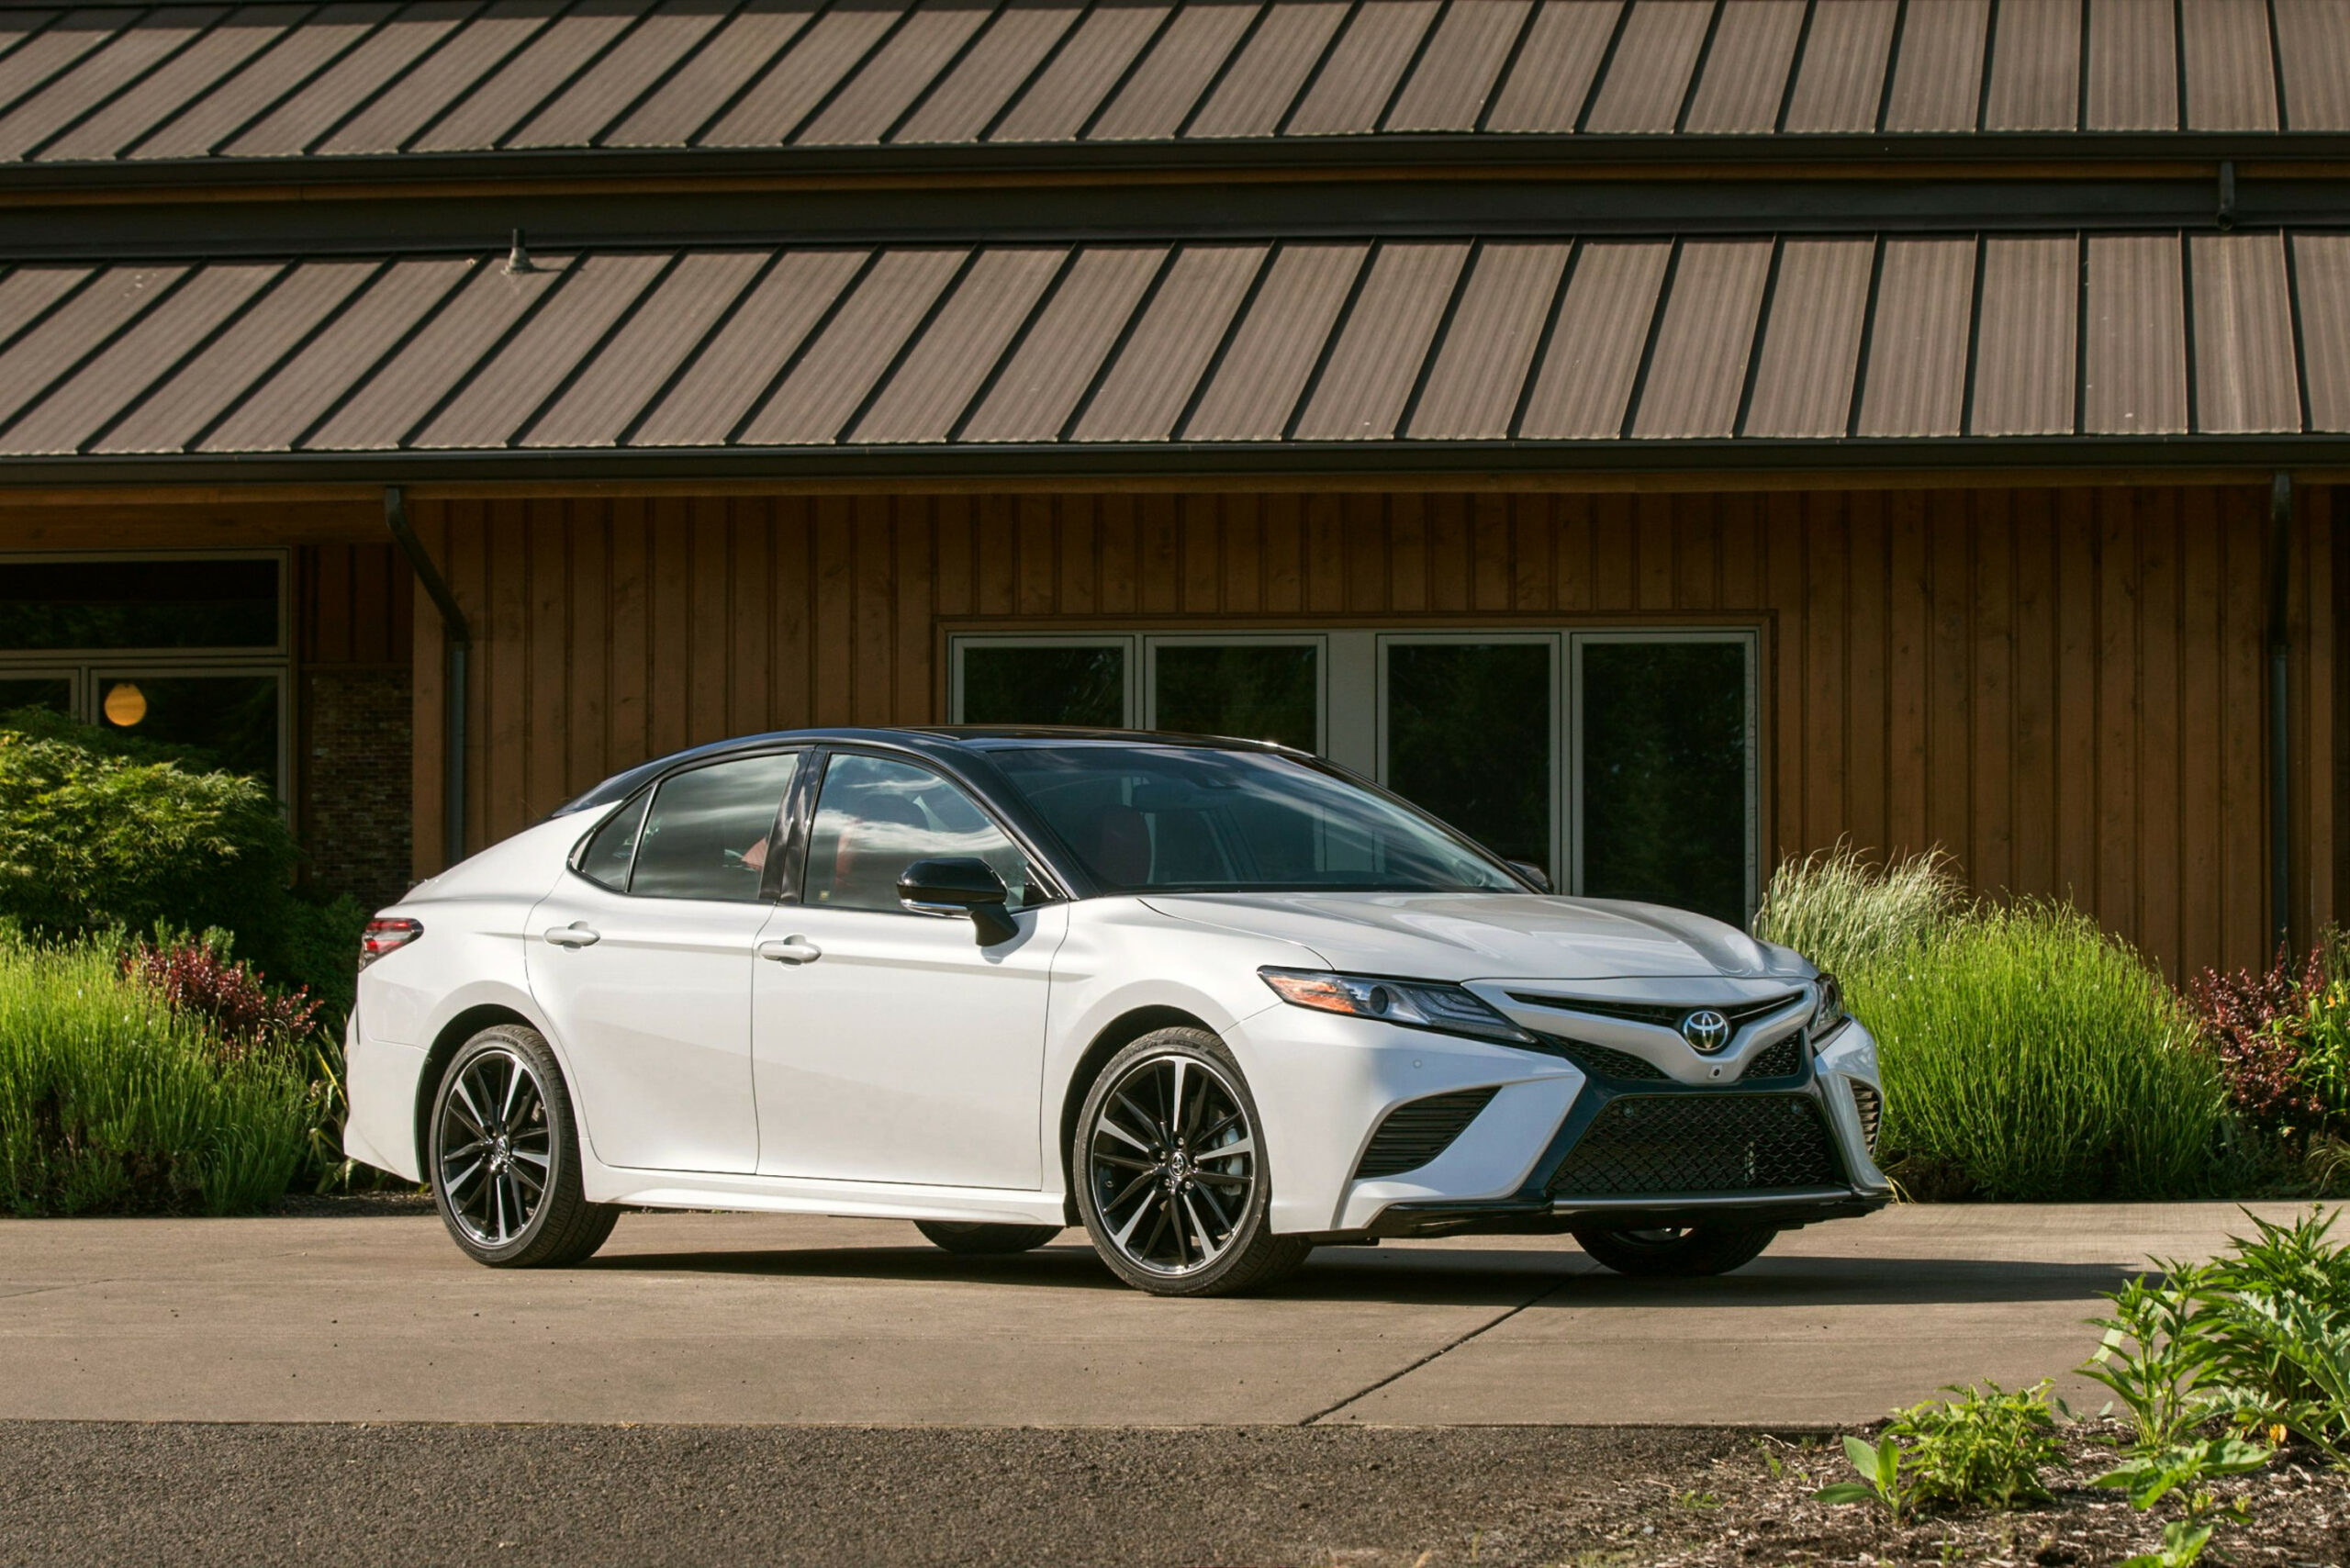 9 Toyota Camry Review, Pricing, and Specs